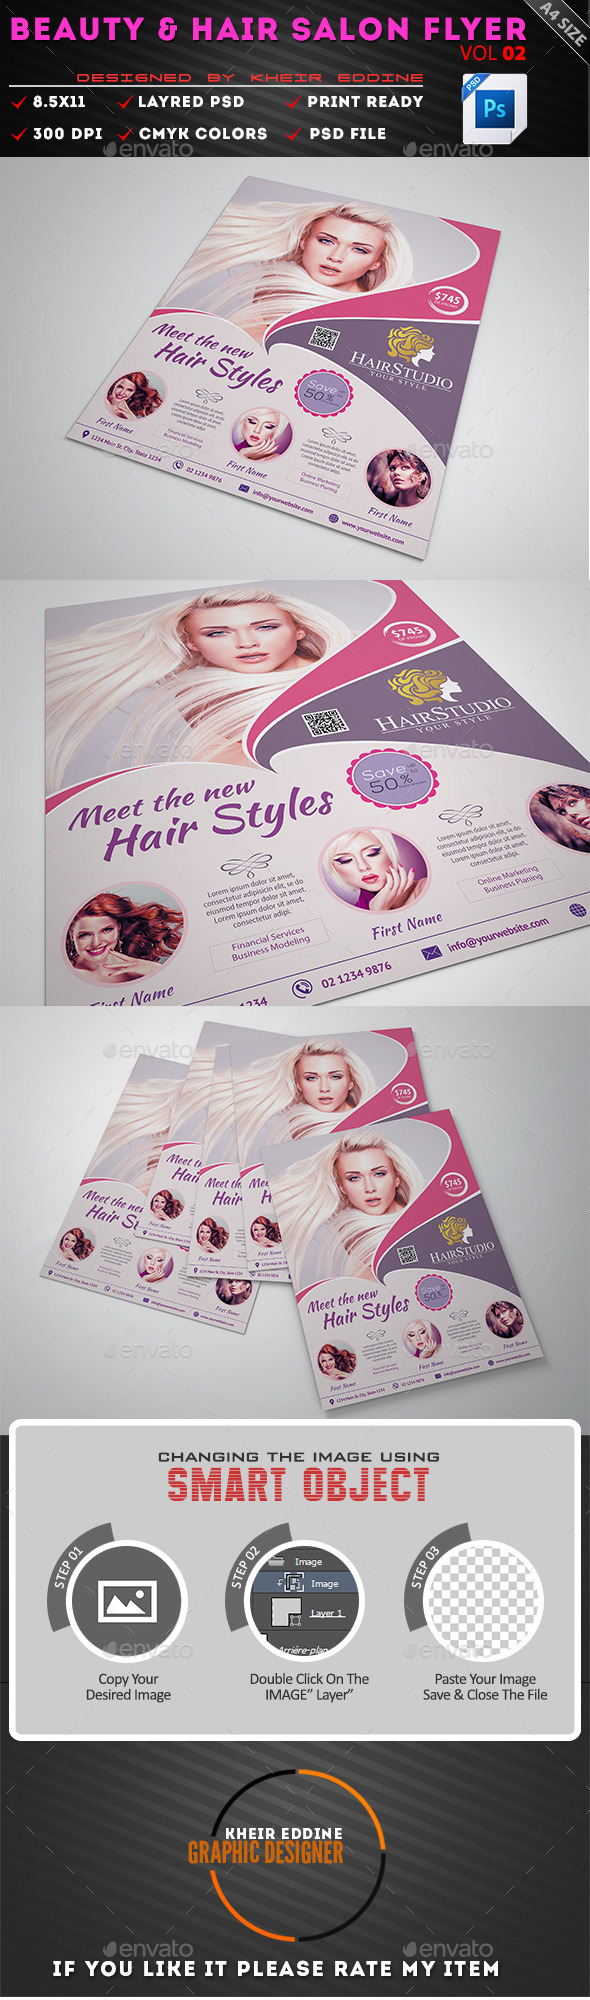 Hair  Beauty Salon Flyer On Behance  Web Page Ideas